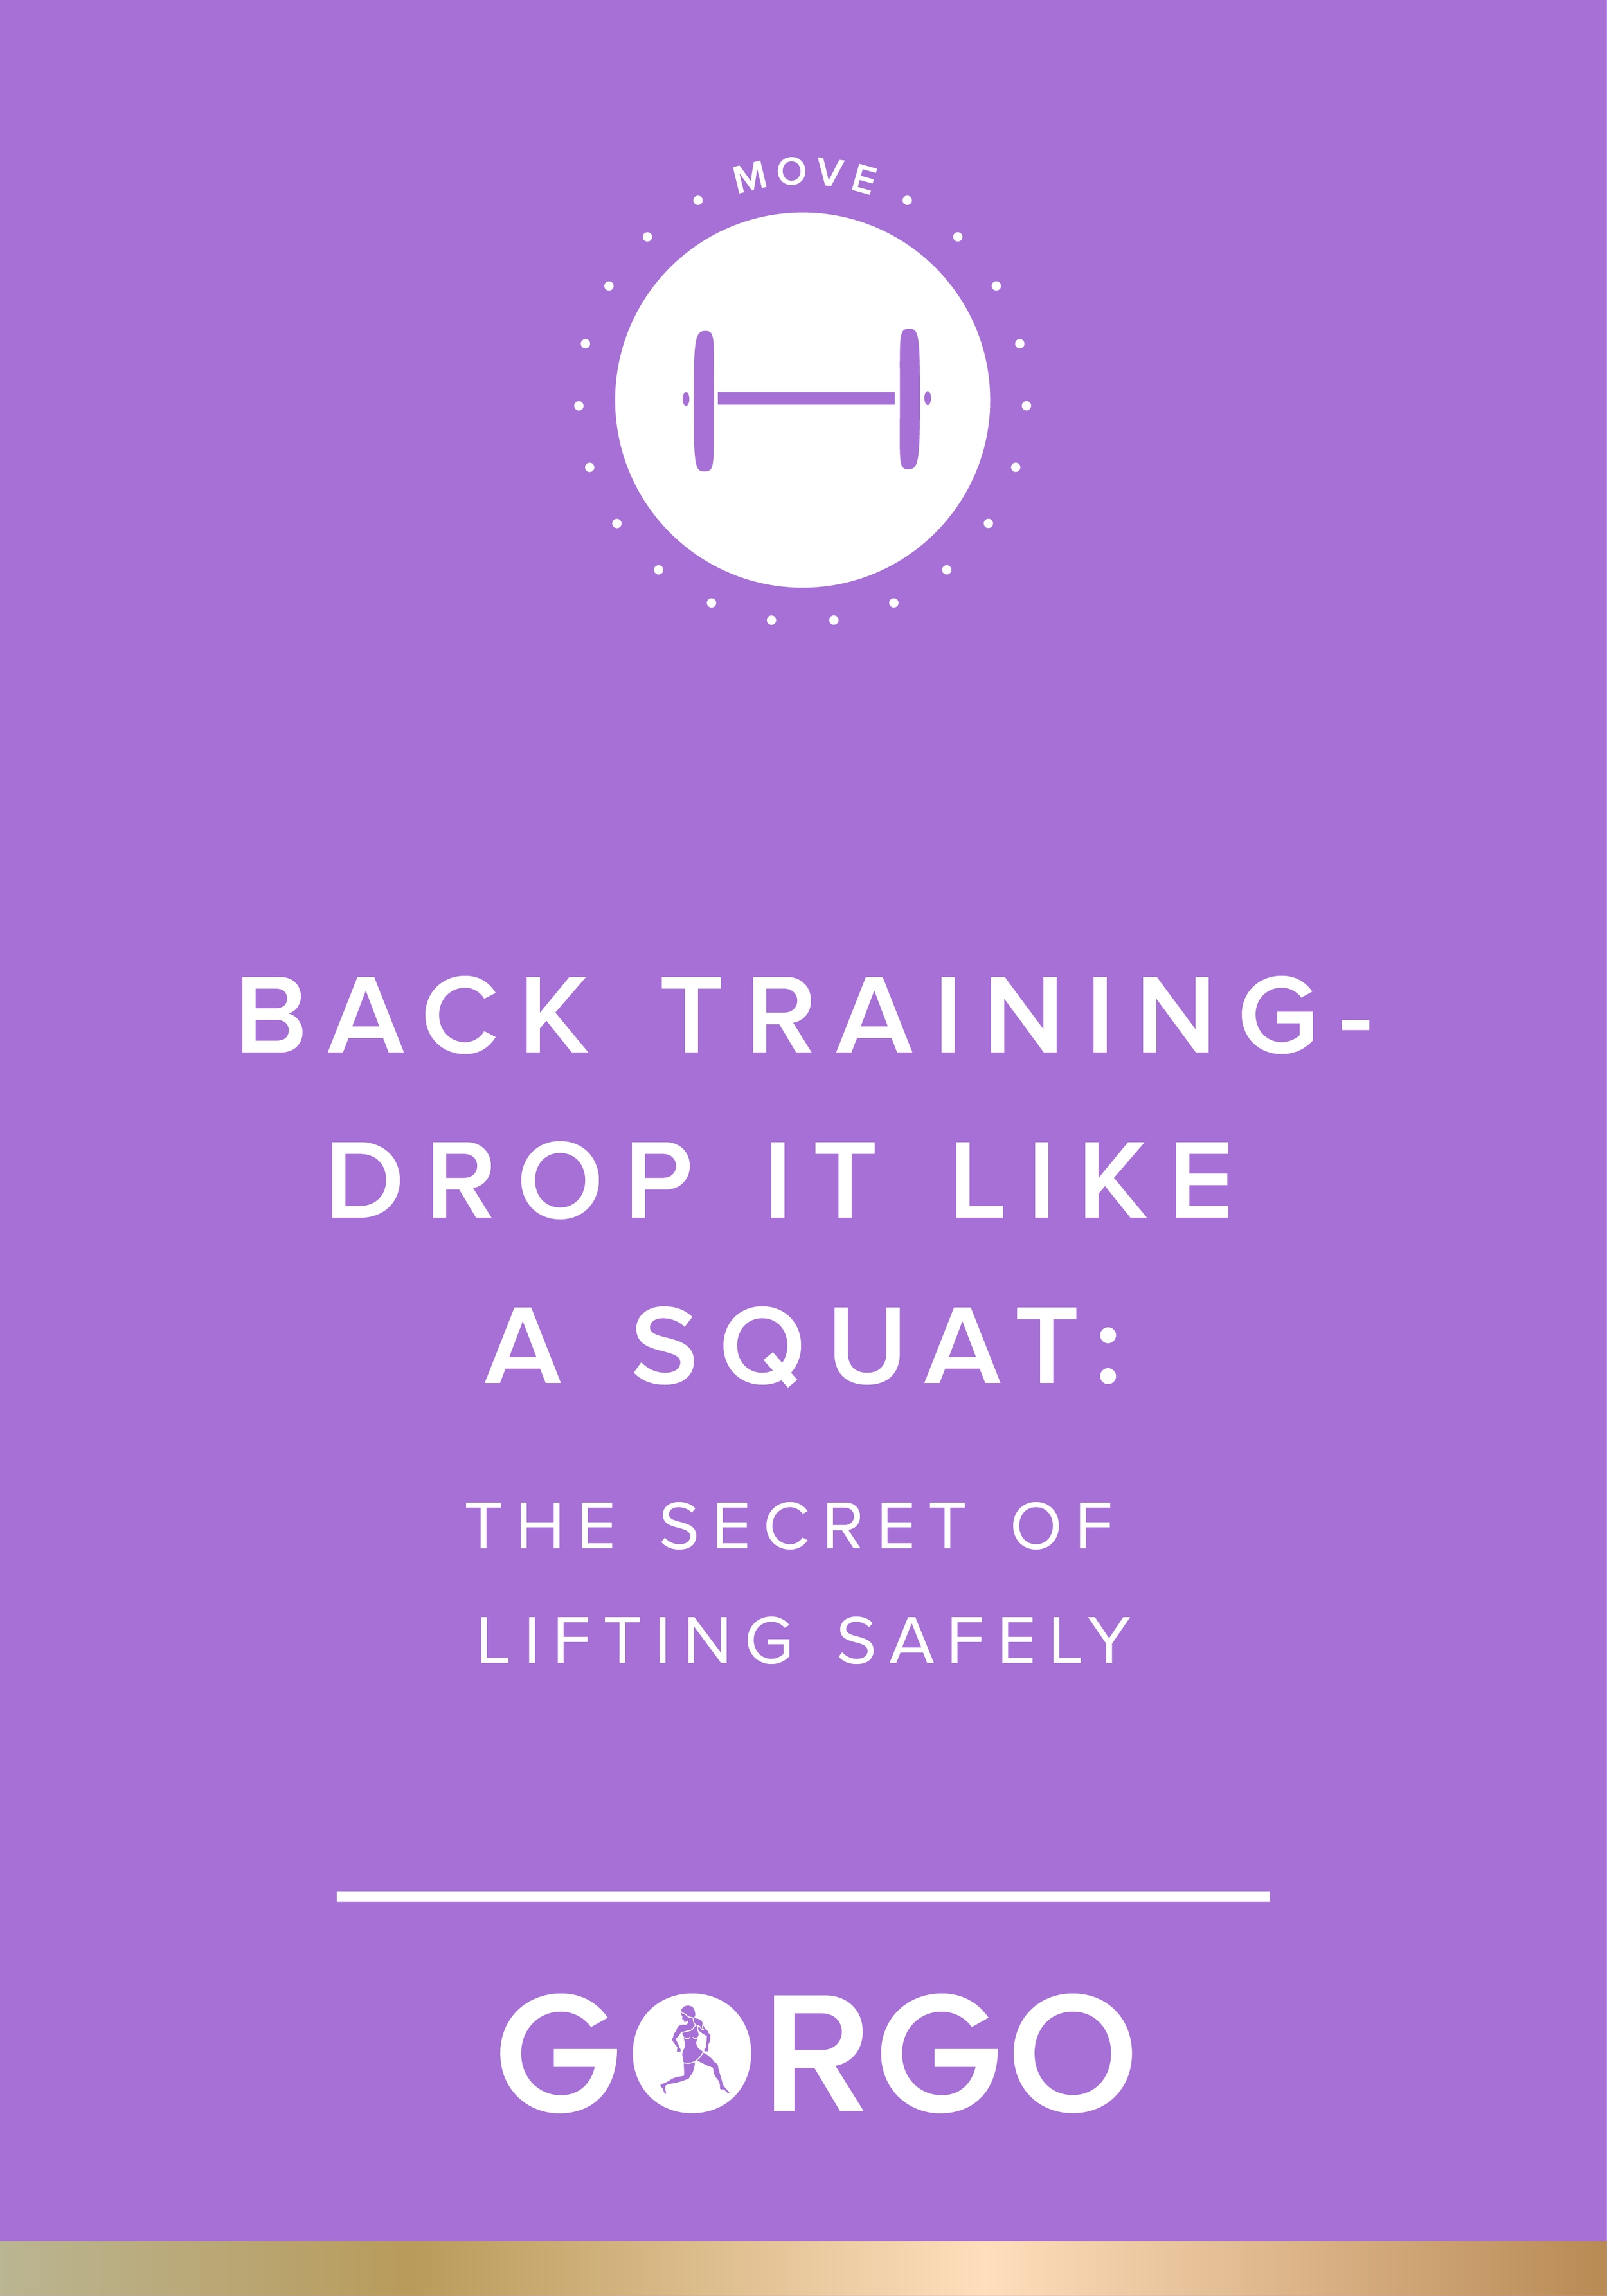 Drop it Like a squat: The secret to lifting safely #gorgogirl